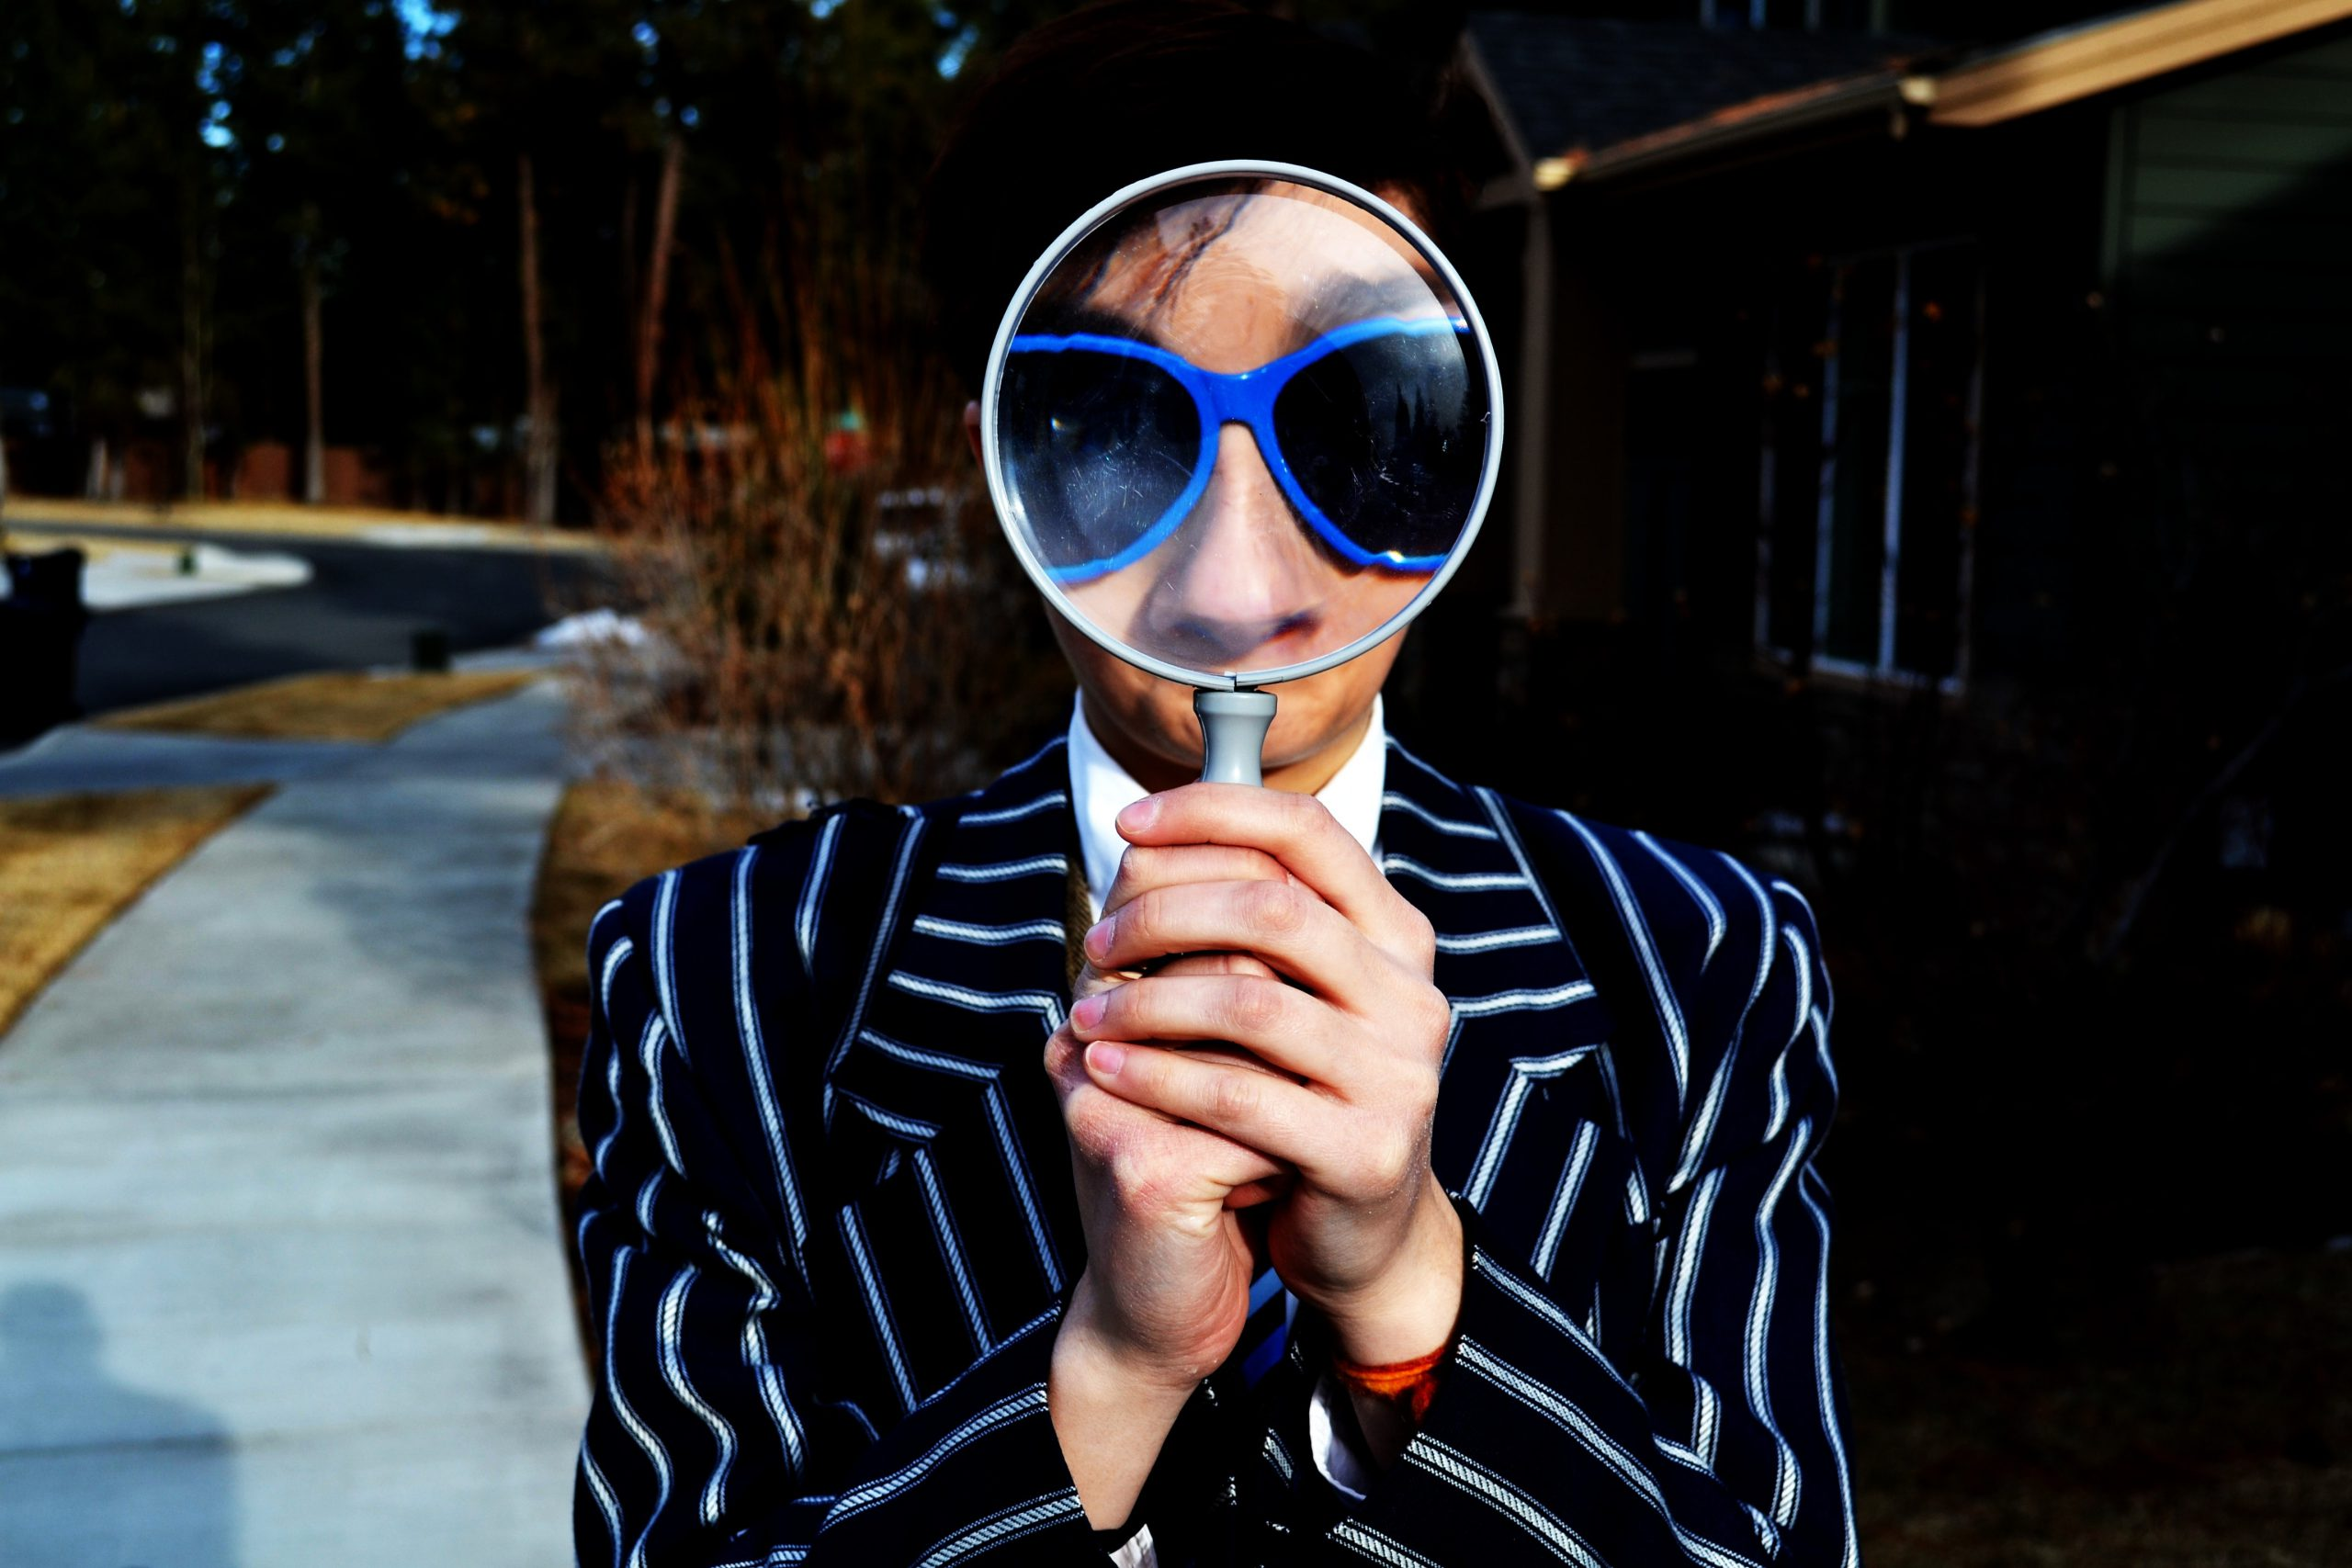 A staff recruiter looking through a magnifying glass.